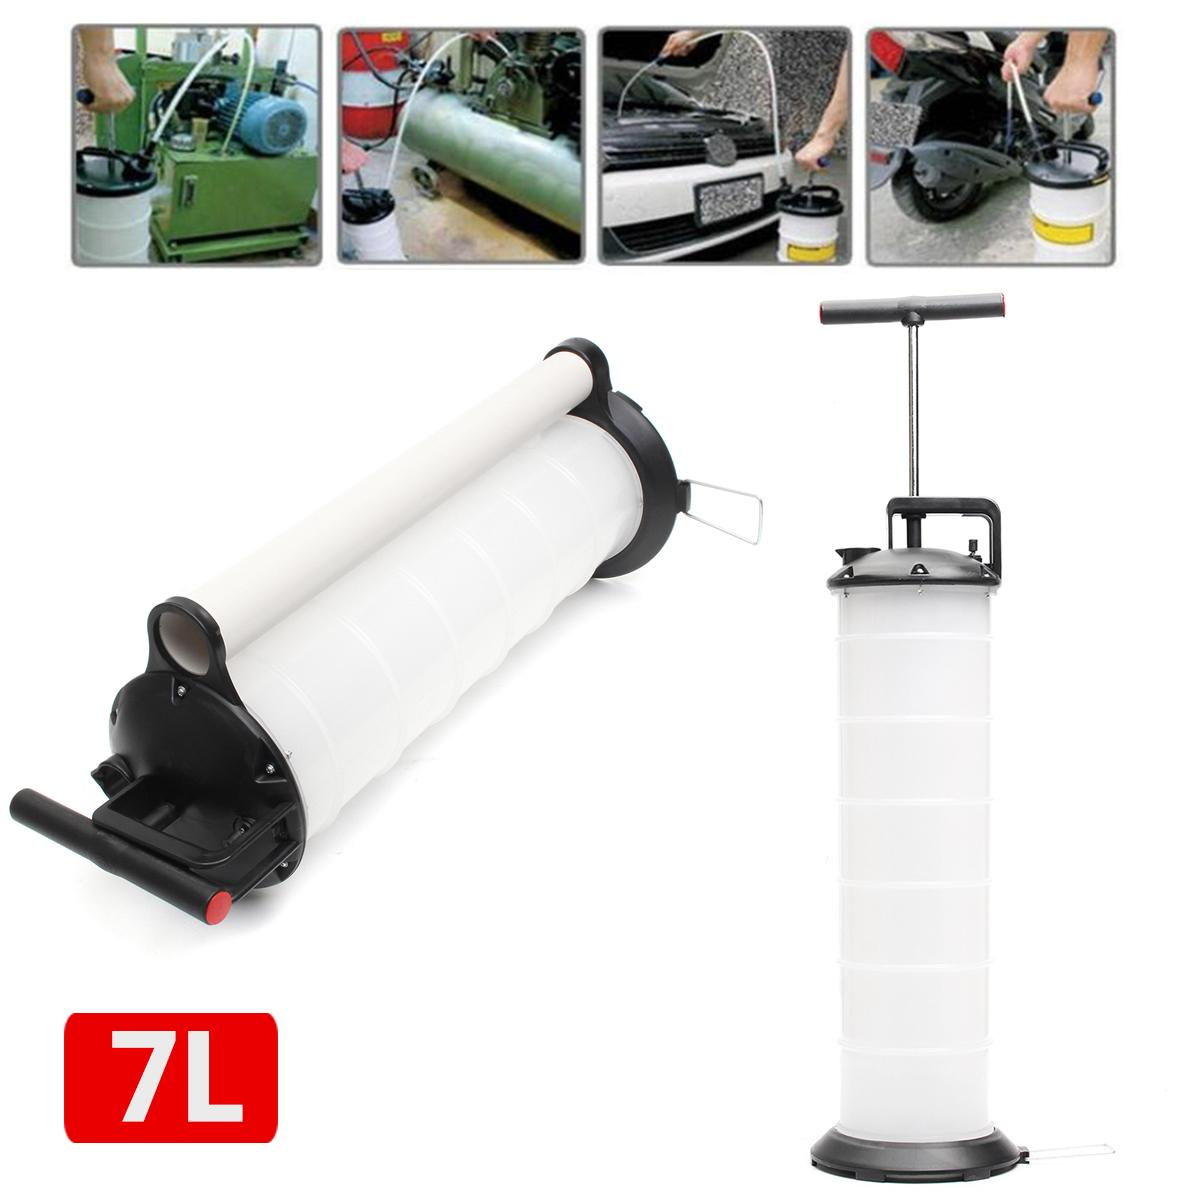 7L Manual Car Oil Vacuum Extractor Pump Petrol Water Suction ExtractionTransfer Fluid Fuel Transfer Oil Tank Pump for Car Boat7L Manual Car Oil Vacuum Extractor Pump Petrol Water Suction ExtractionTransfer Fluid Fuel Transfer Oil Tank Pump for Car Boat